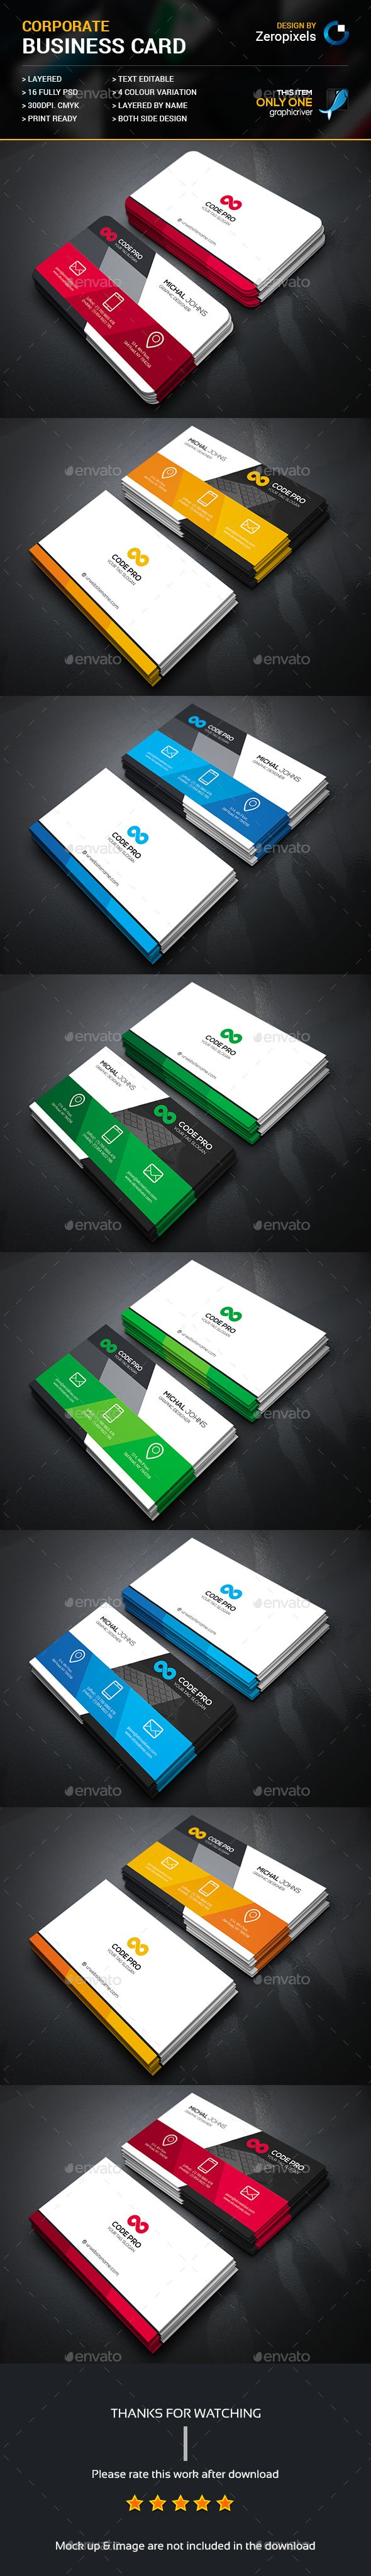 Corporate business card bundle business cards print template psd corporate business card bundle business cards print template psd download here http reheart Images